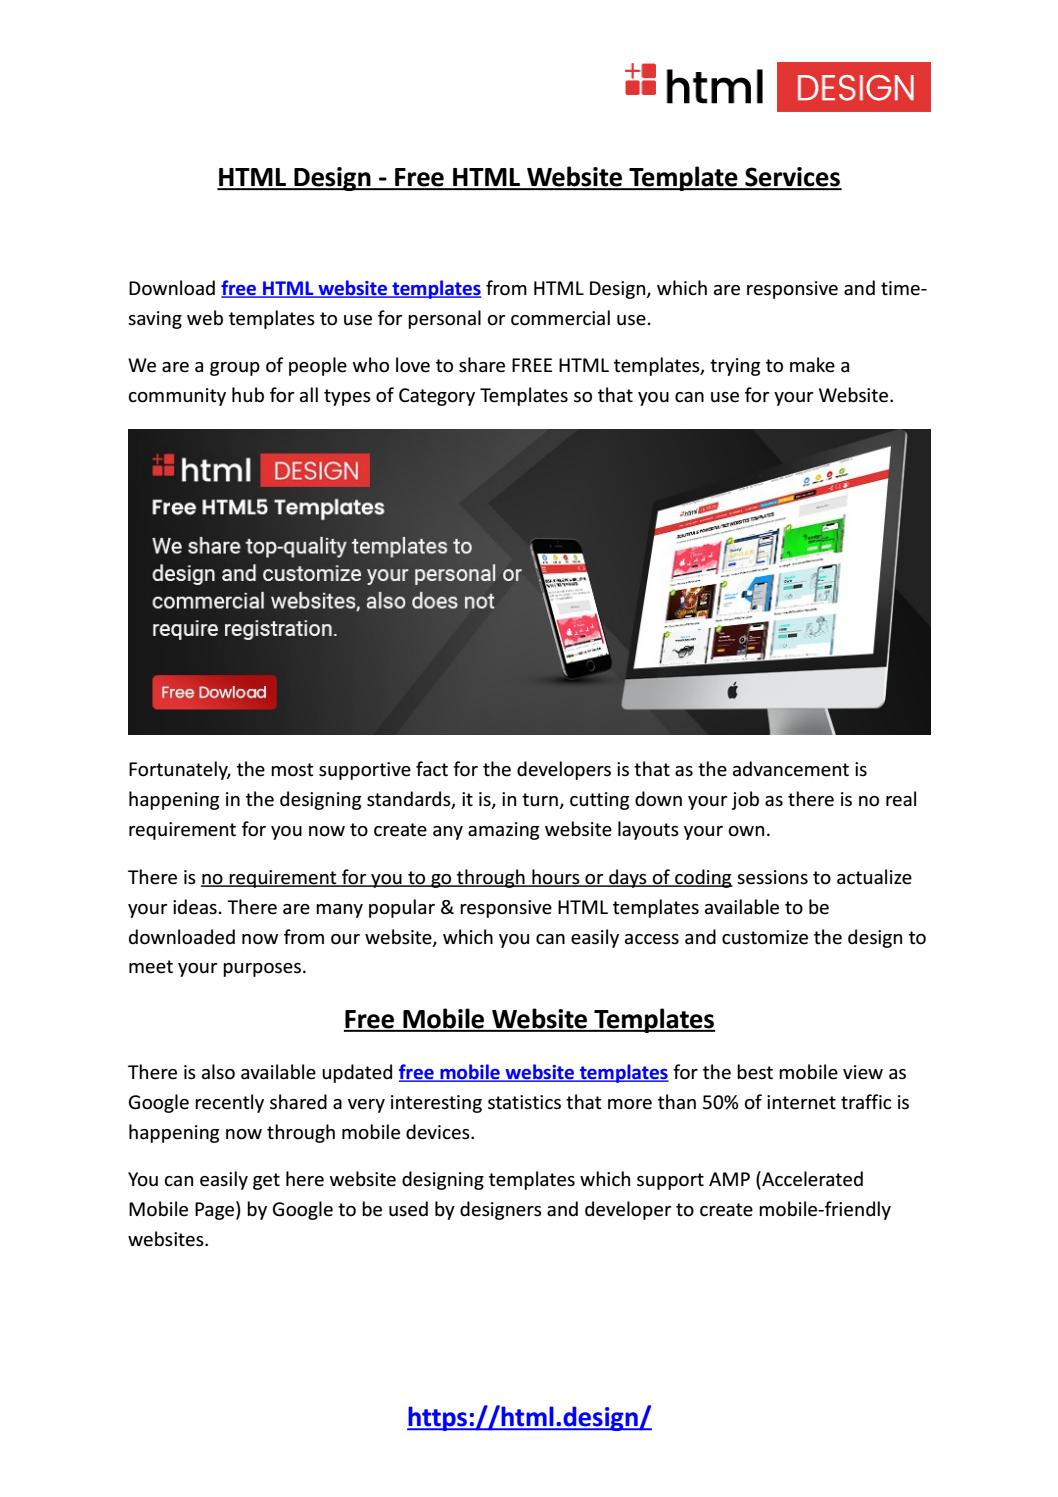 Html Design Free Html Website Template Services By Html Design Free Html Templates Issuu